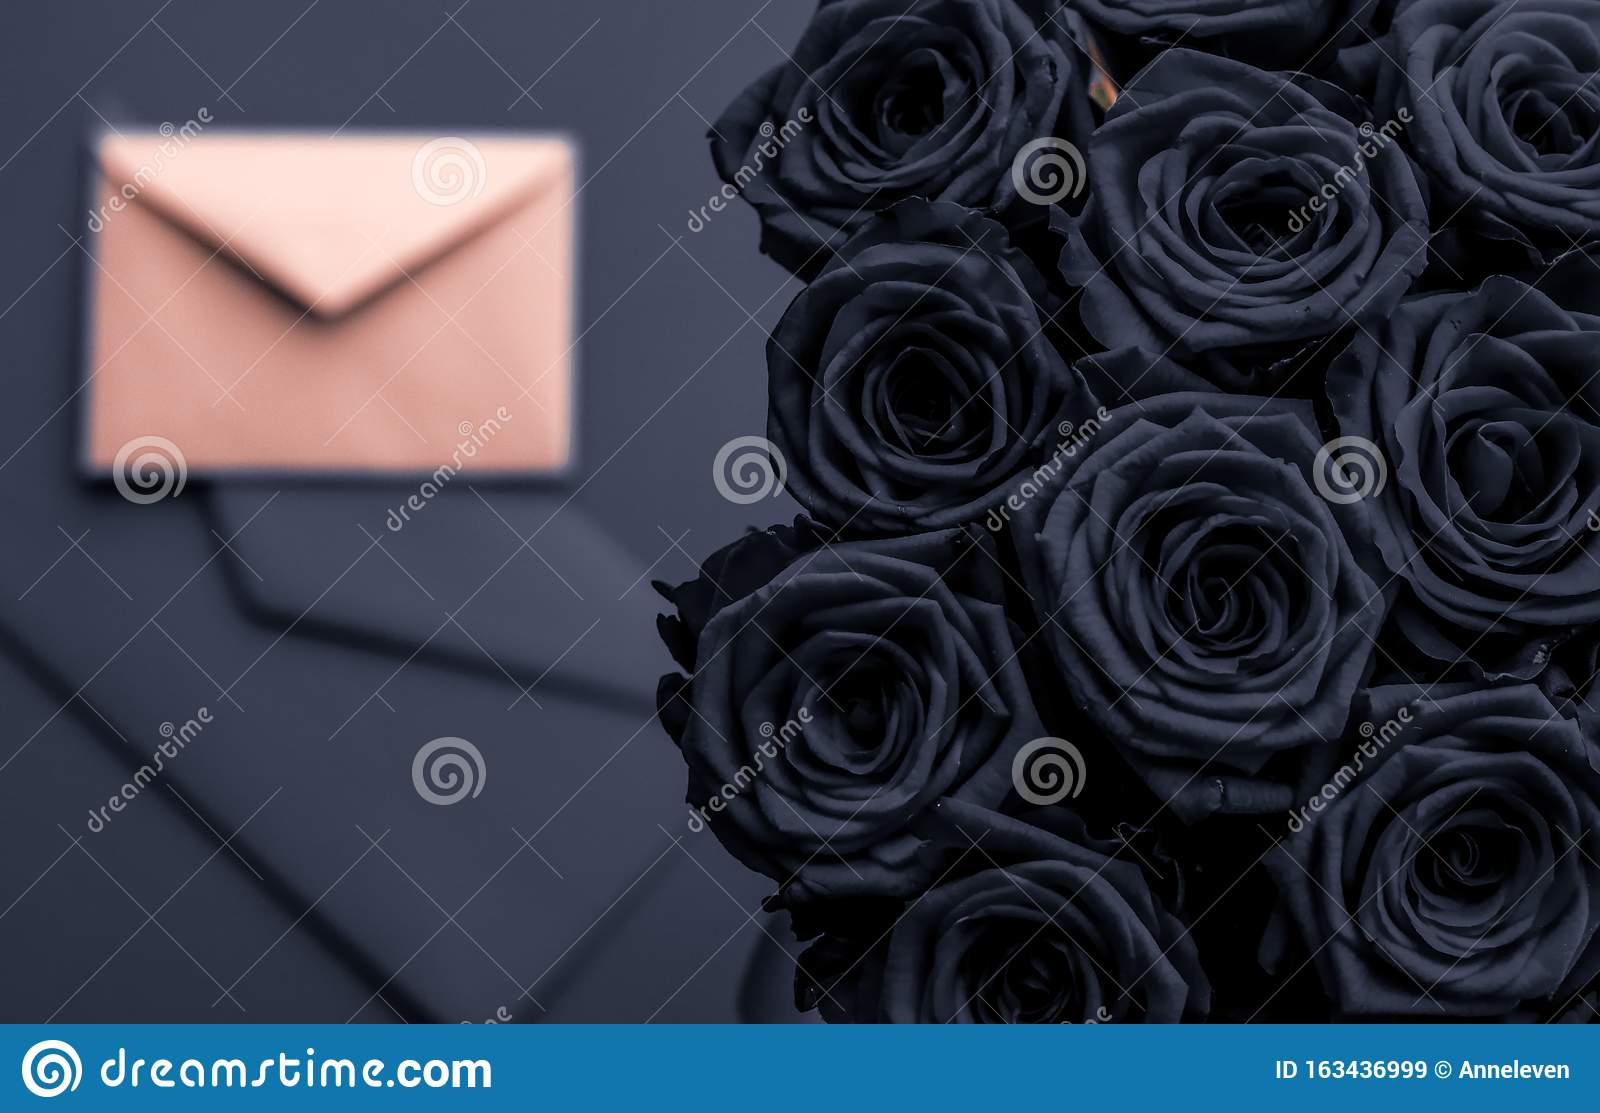 Love letter and flowers delivery on Valentines Day, luxury bouquet of roses and card on charcoal background for romantic holiday